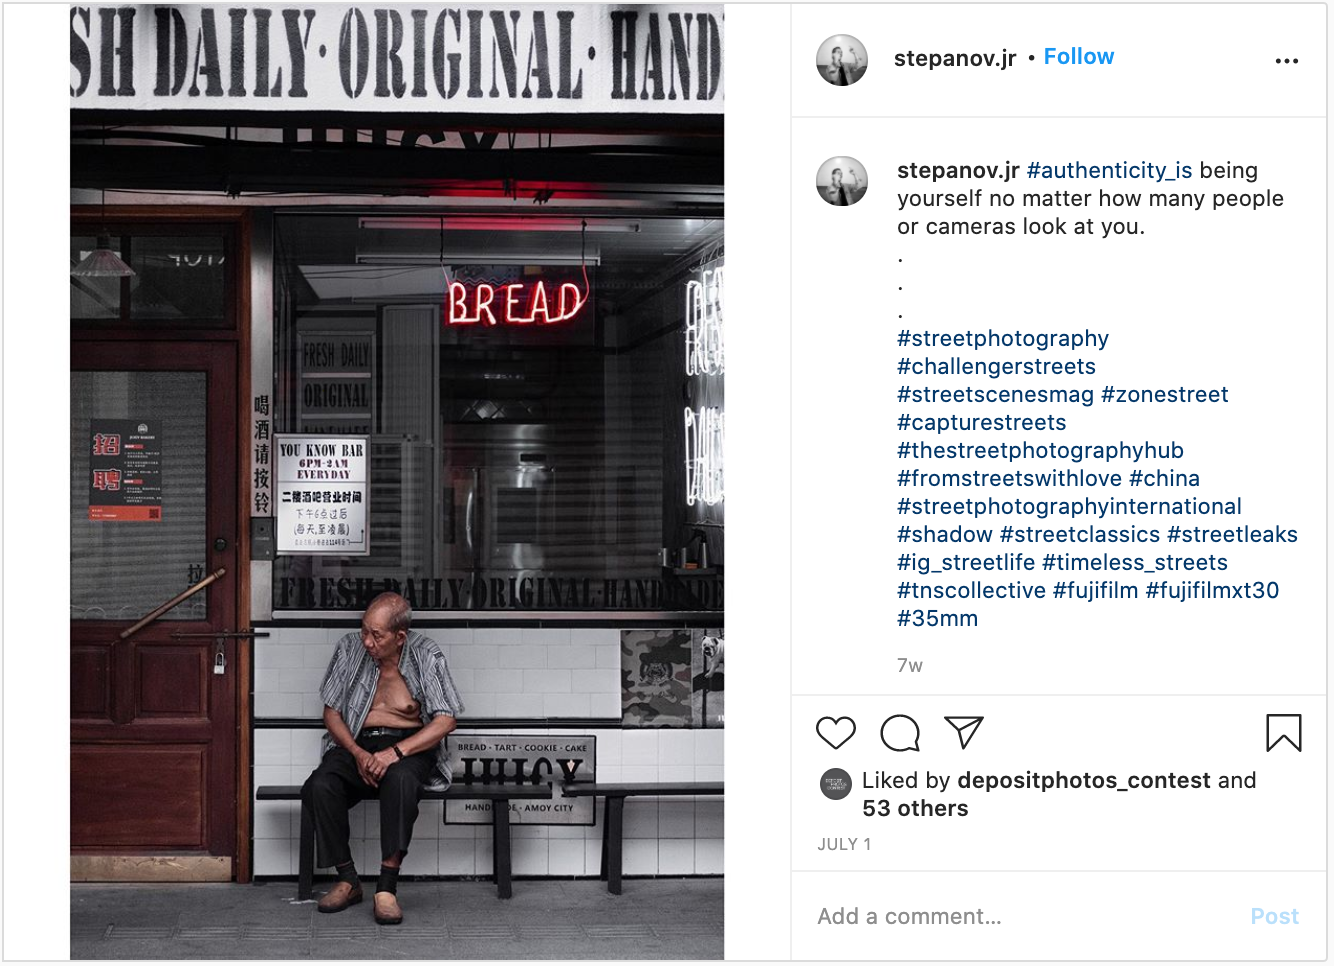 20 Photographers And Their Artistic Vision of Authenticity [ Week 3 And 4 ]